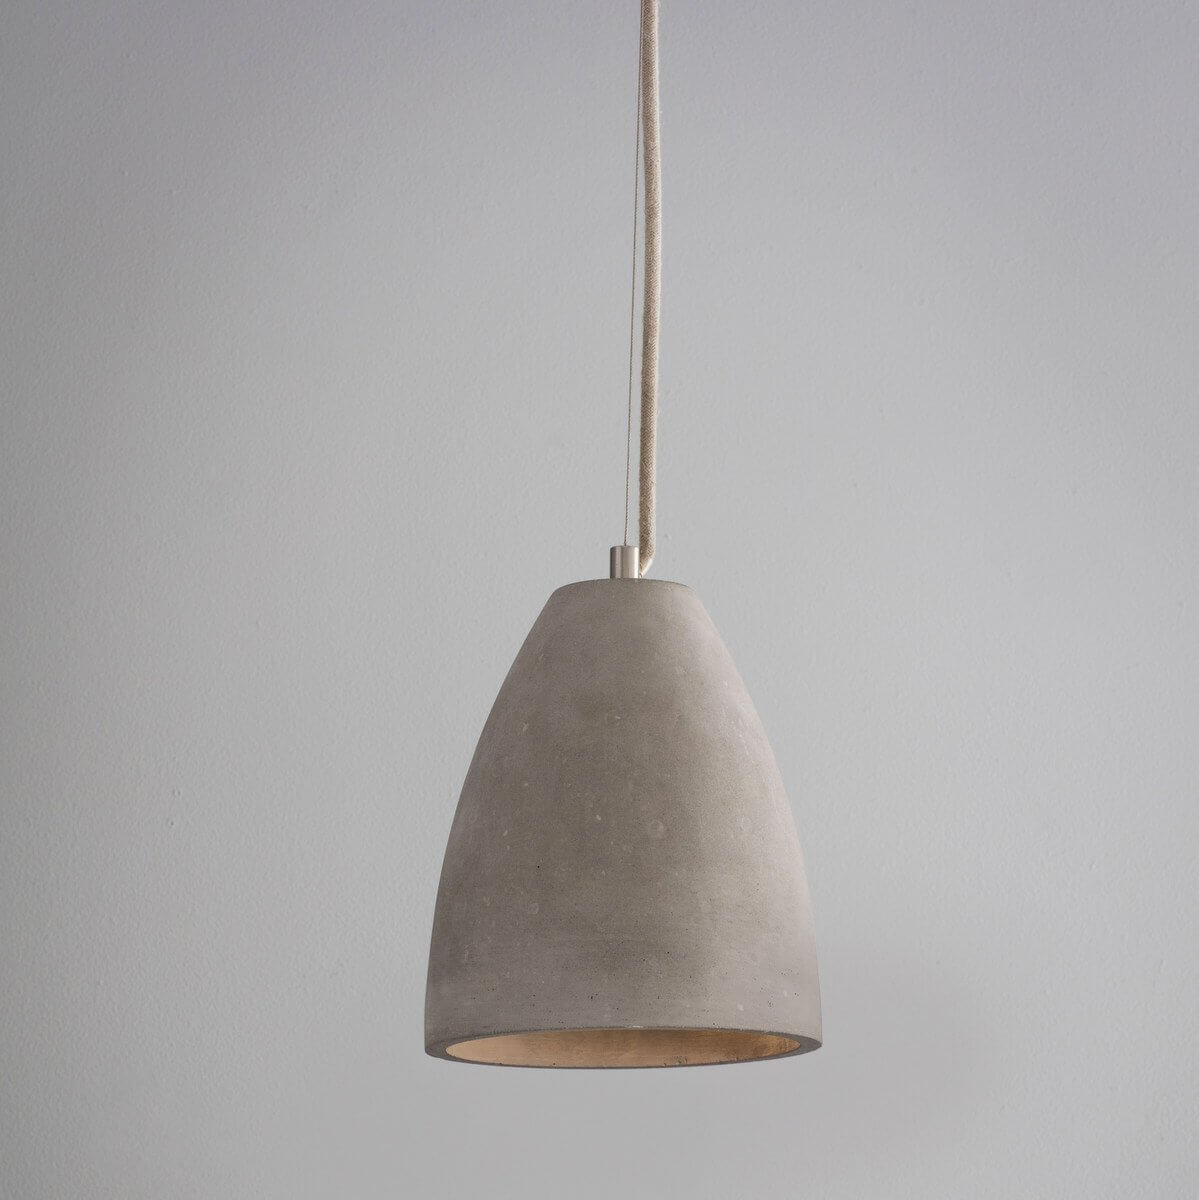 Concrete Dome Pendant Light SAVE 15%